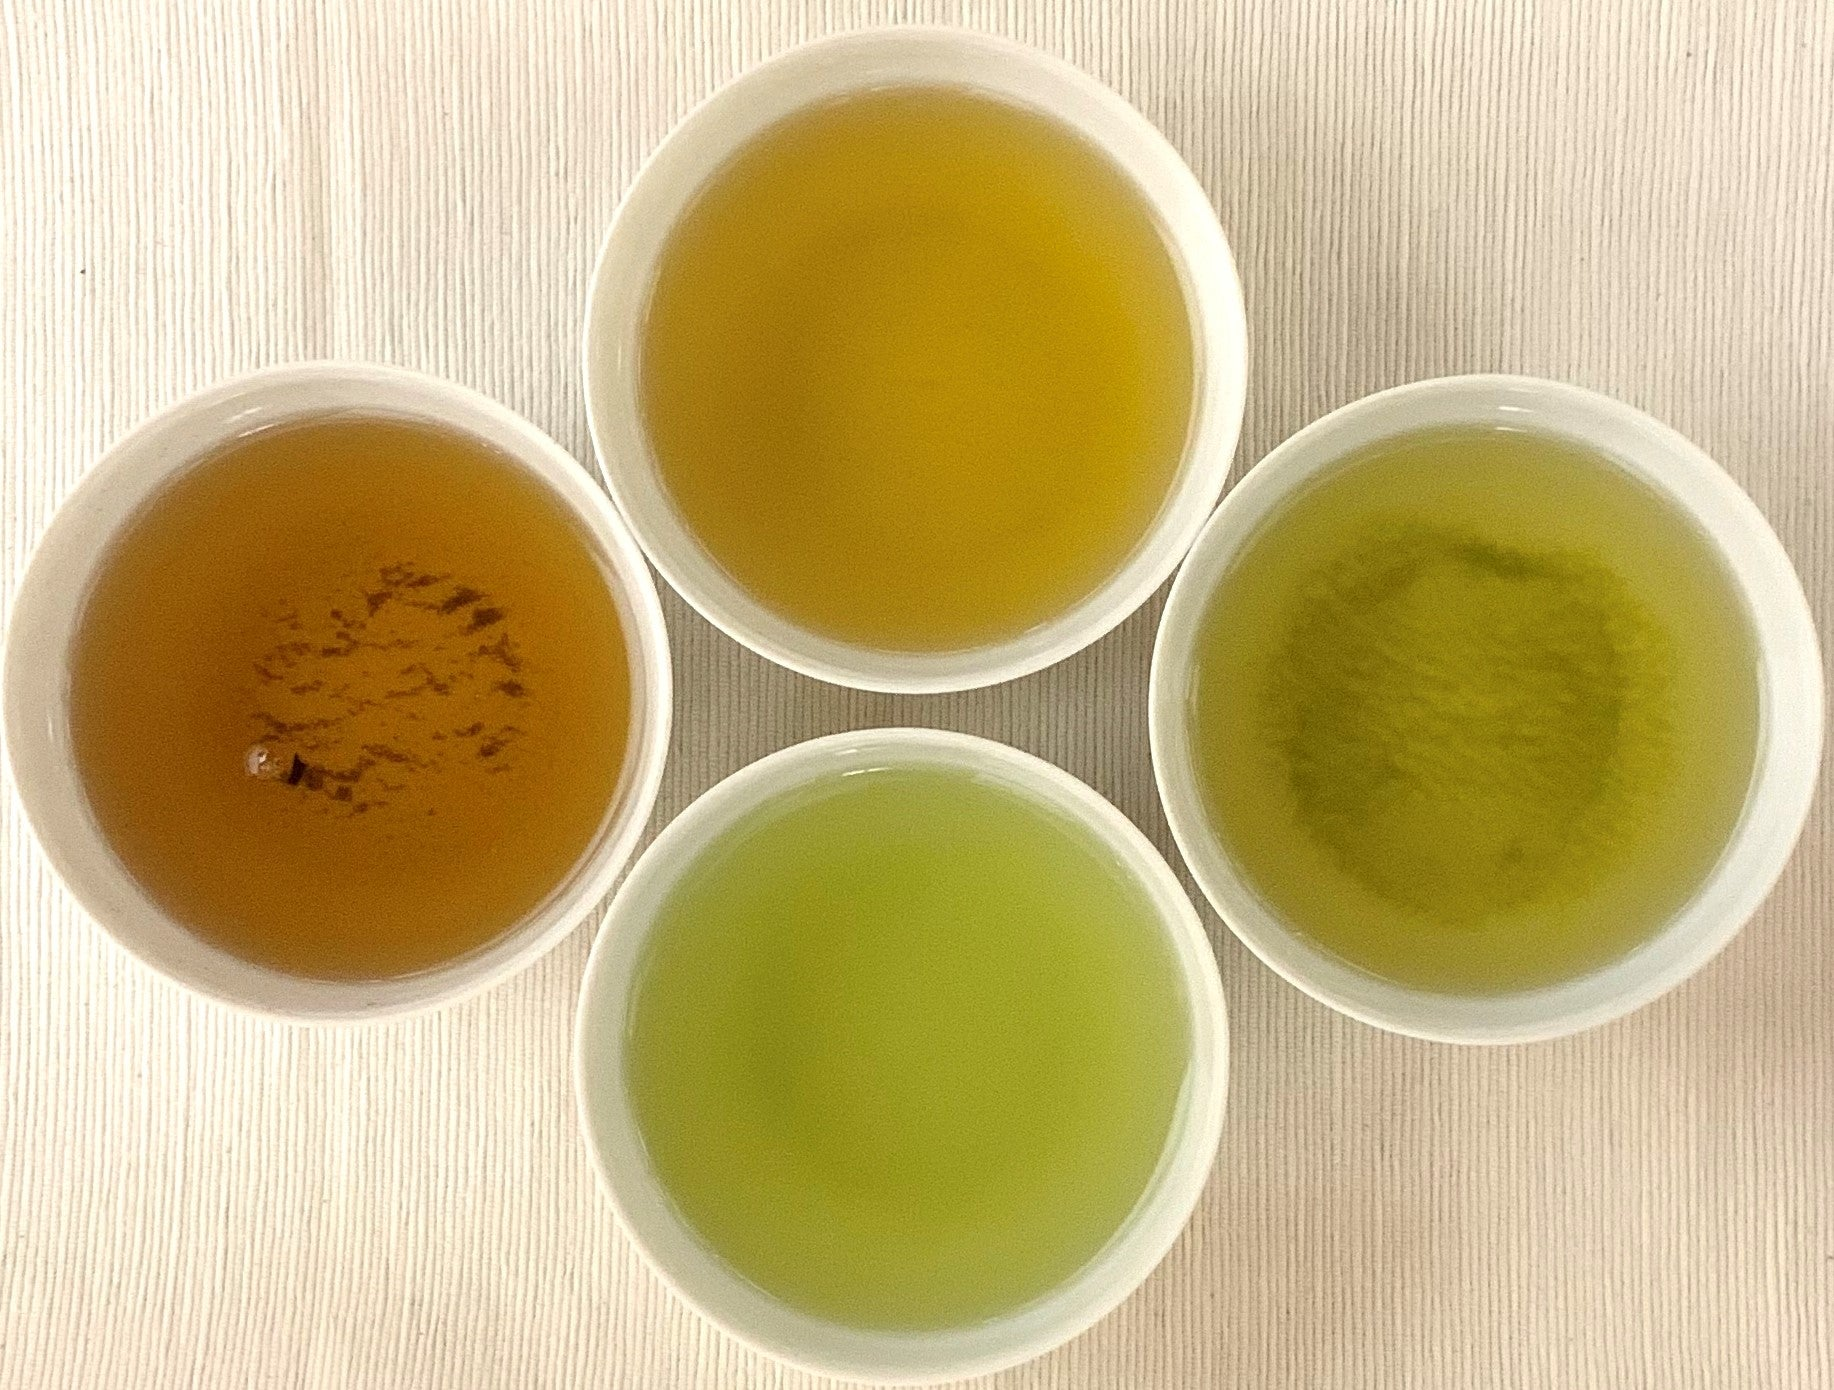 What is the Difference in Color and Aroma of Each Type of Japanese Green Tea